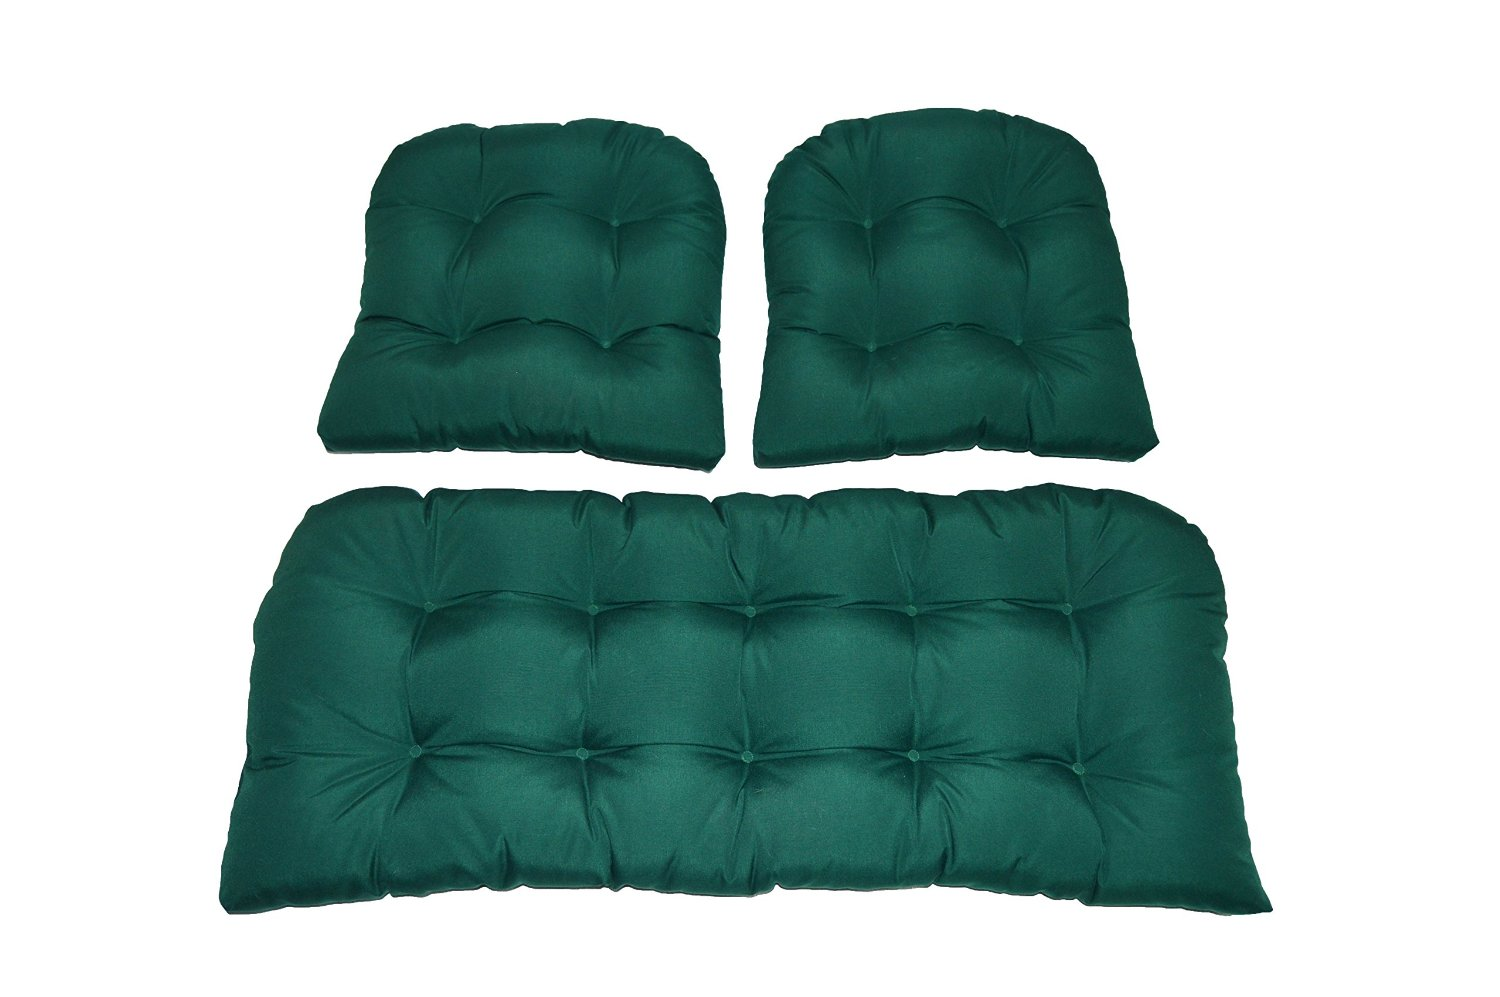 3 Piece Wicker Cushion Set - Solid Hunter Green Indoor / Outdoor Fabric Cushion for Wicker Loveseat Settee & 2 Matching Chair Cushions